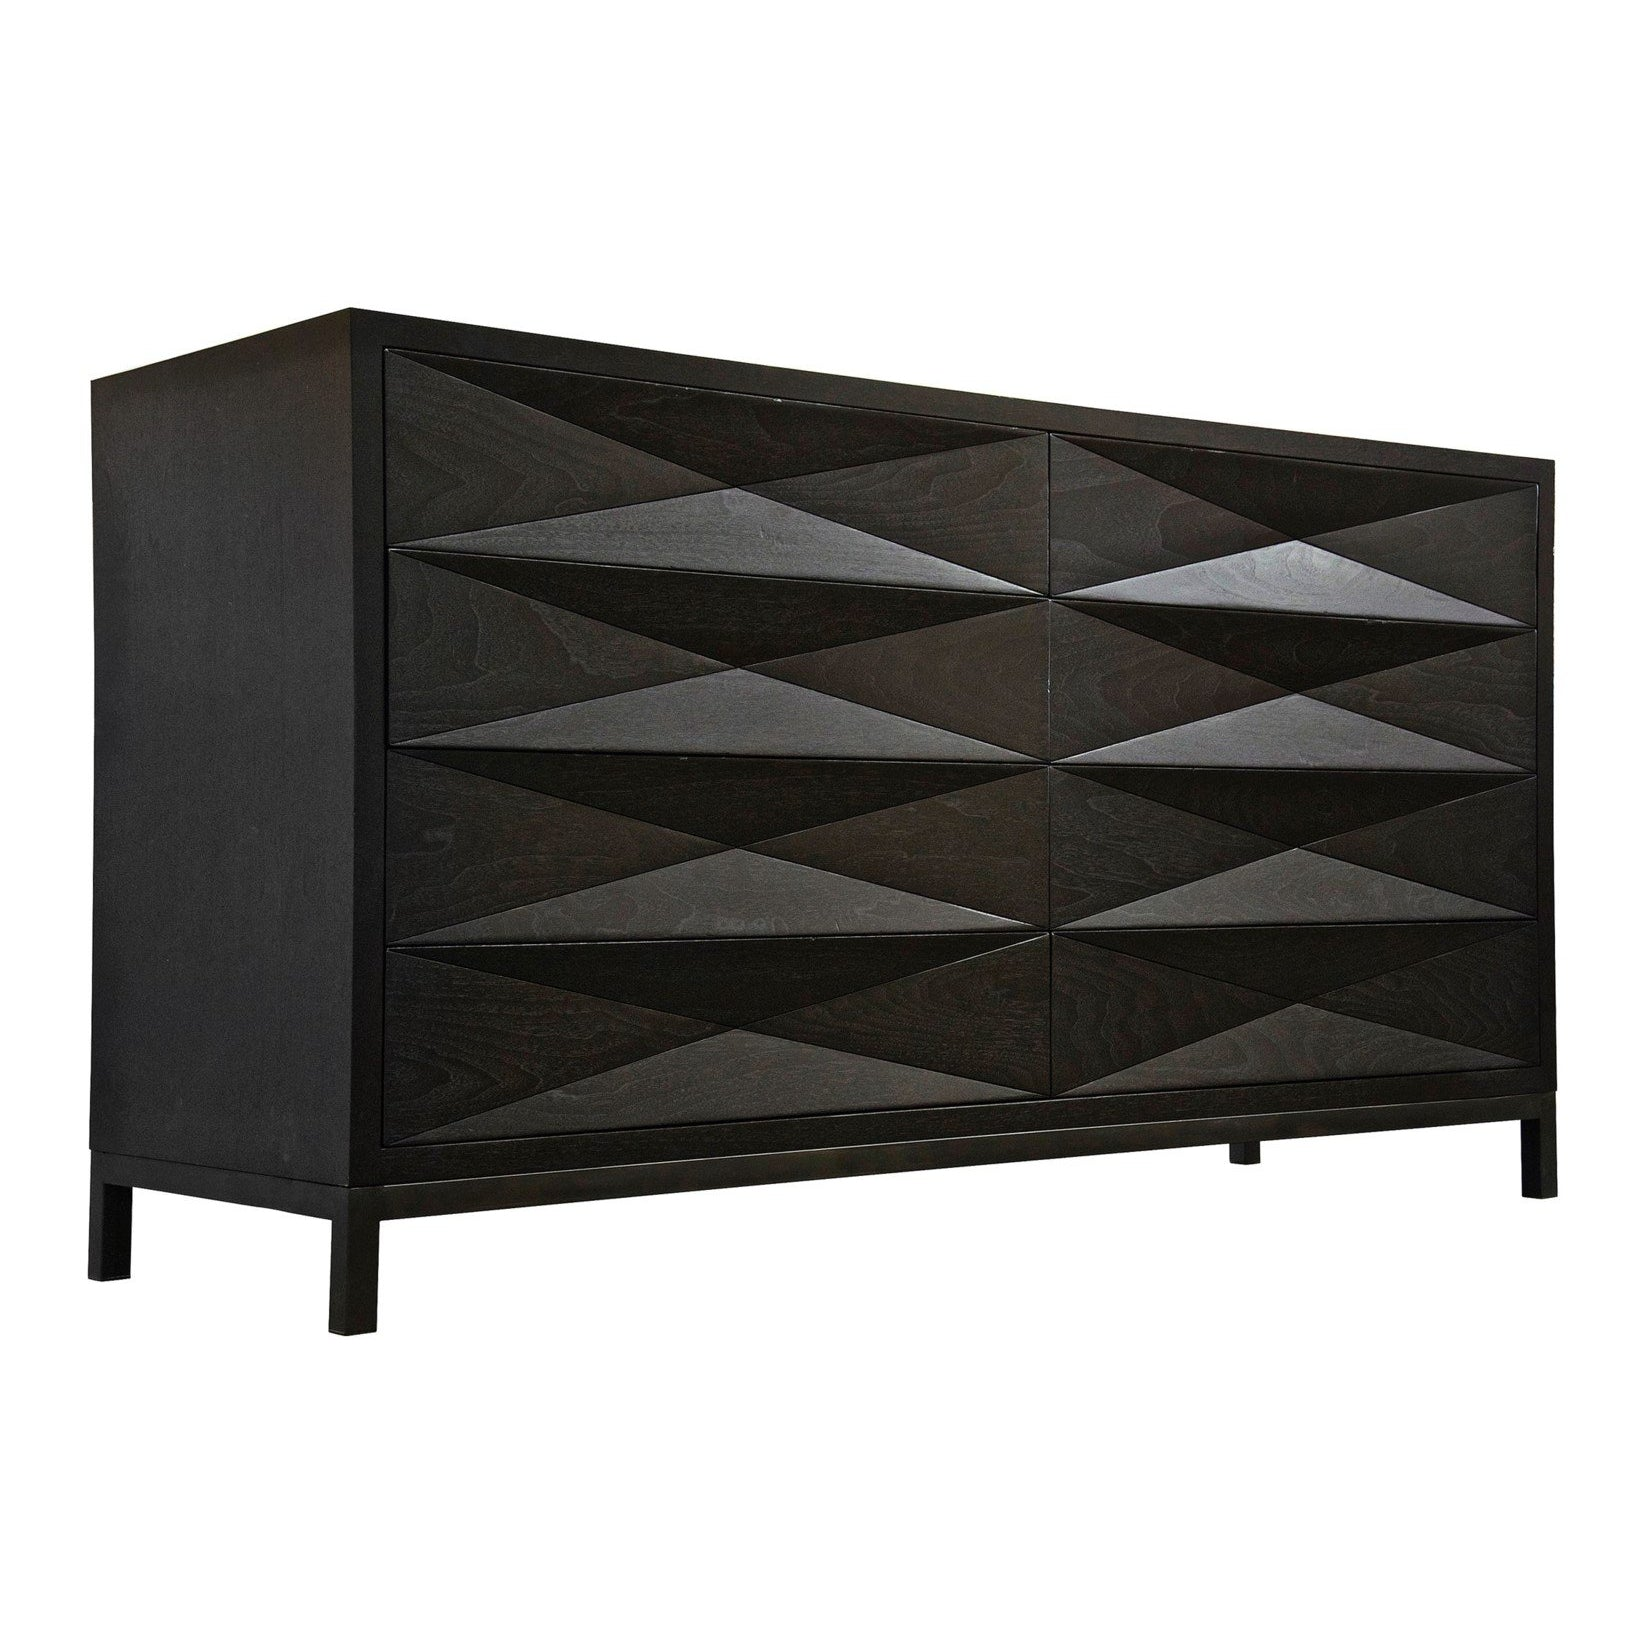 CFC Furniture Diamante 8 Drawer Dresser, Walnut